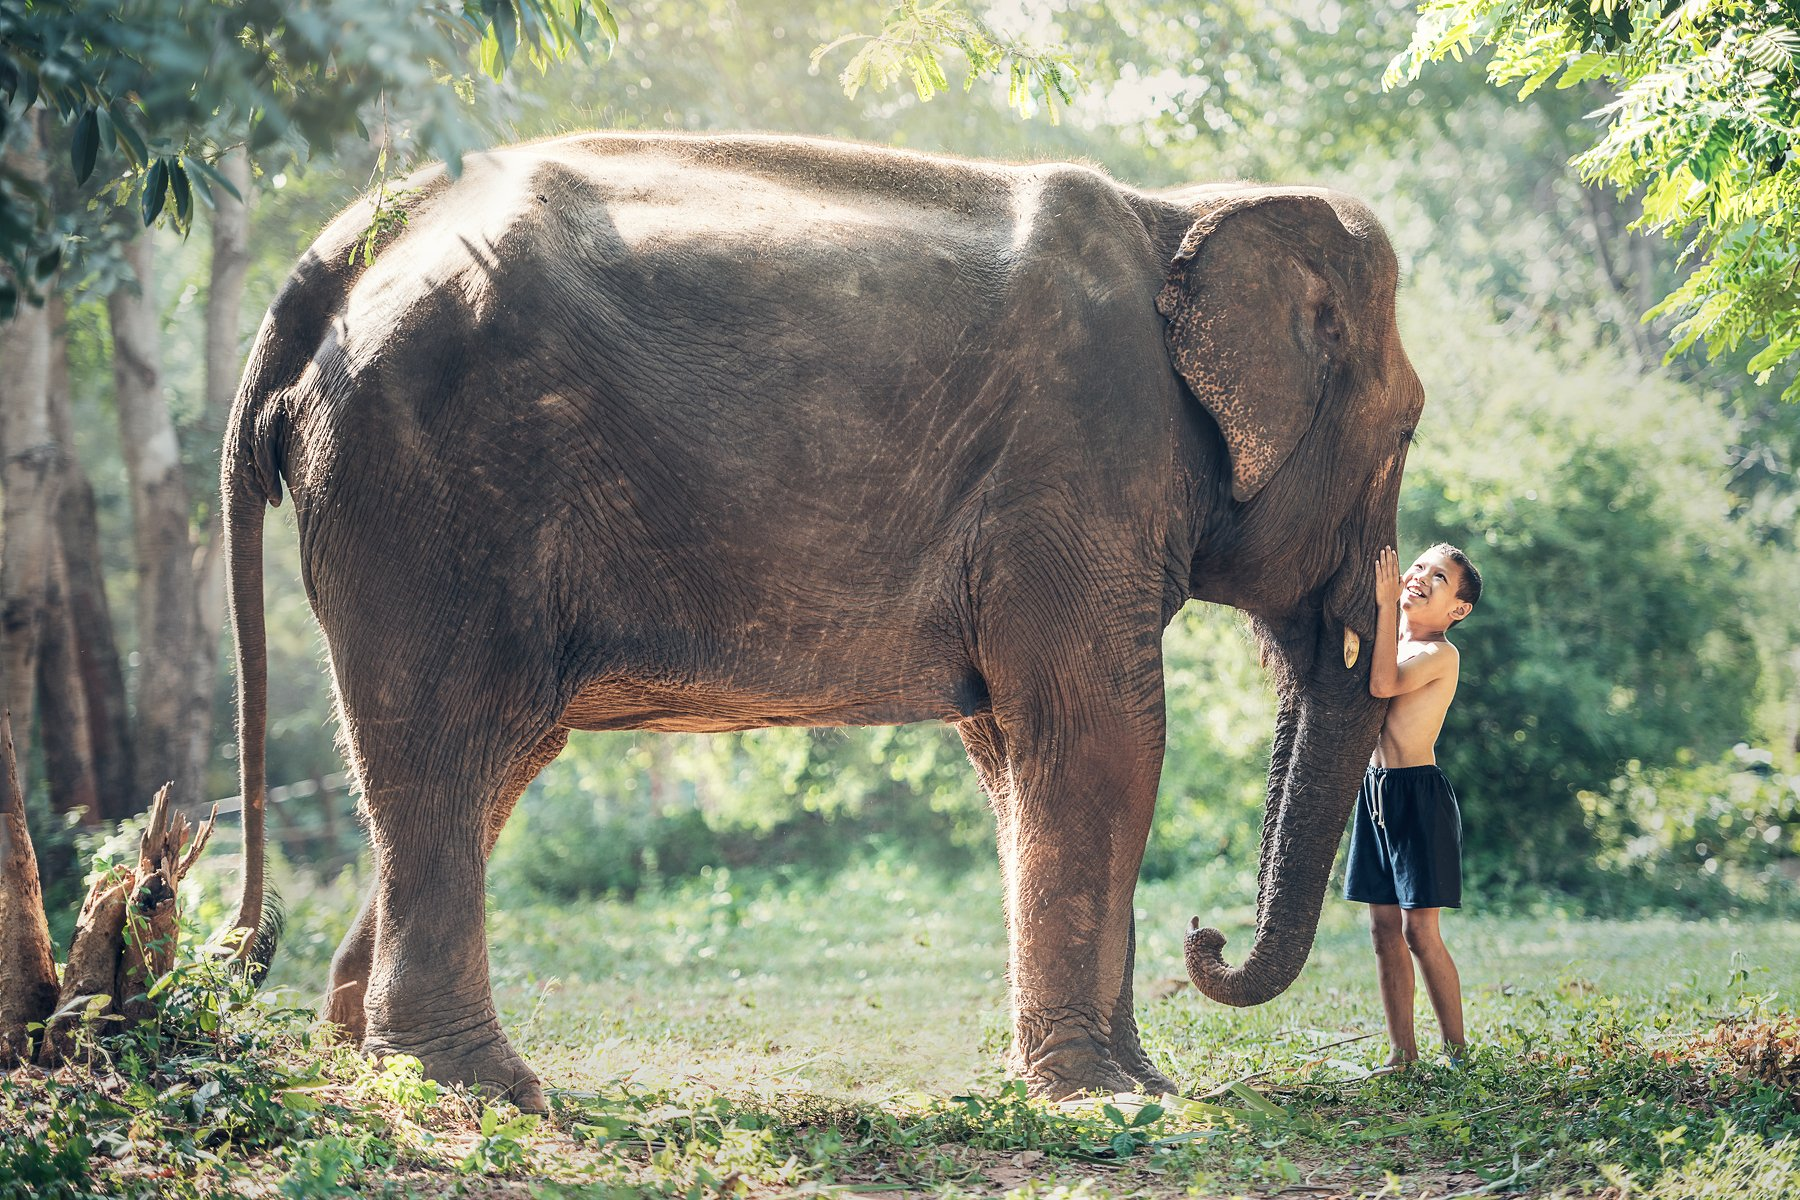 africa, animal, asian, attachment, ayutthaya, beast, big, black, boy, bright, cambodia, canny, child, clasp, close, conservation, drag, elephant, endangered, friend, friendship, heavy, herbivore, hug, huge, innocent, intelligent, jungle, laos, large, life, Sasin Tipchai